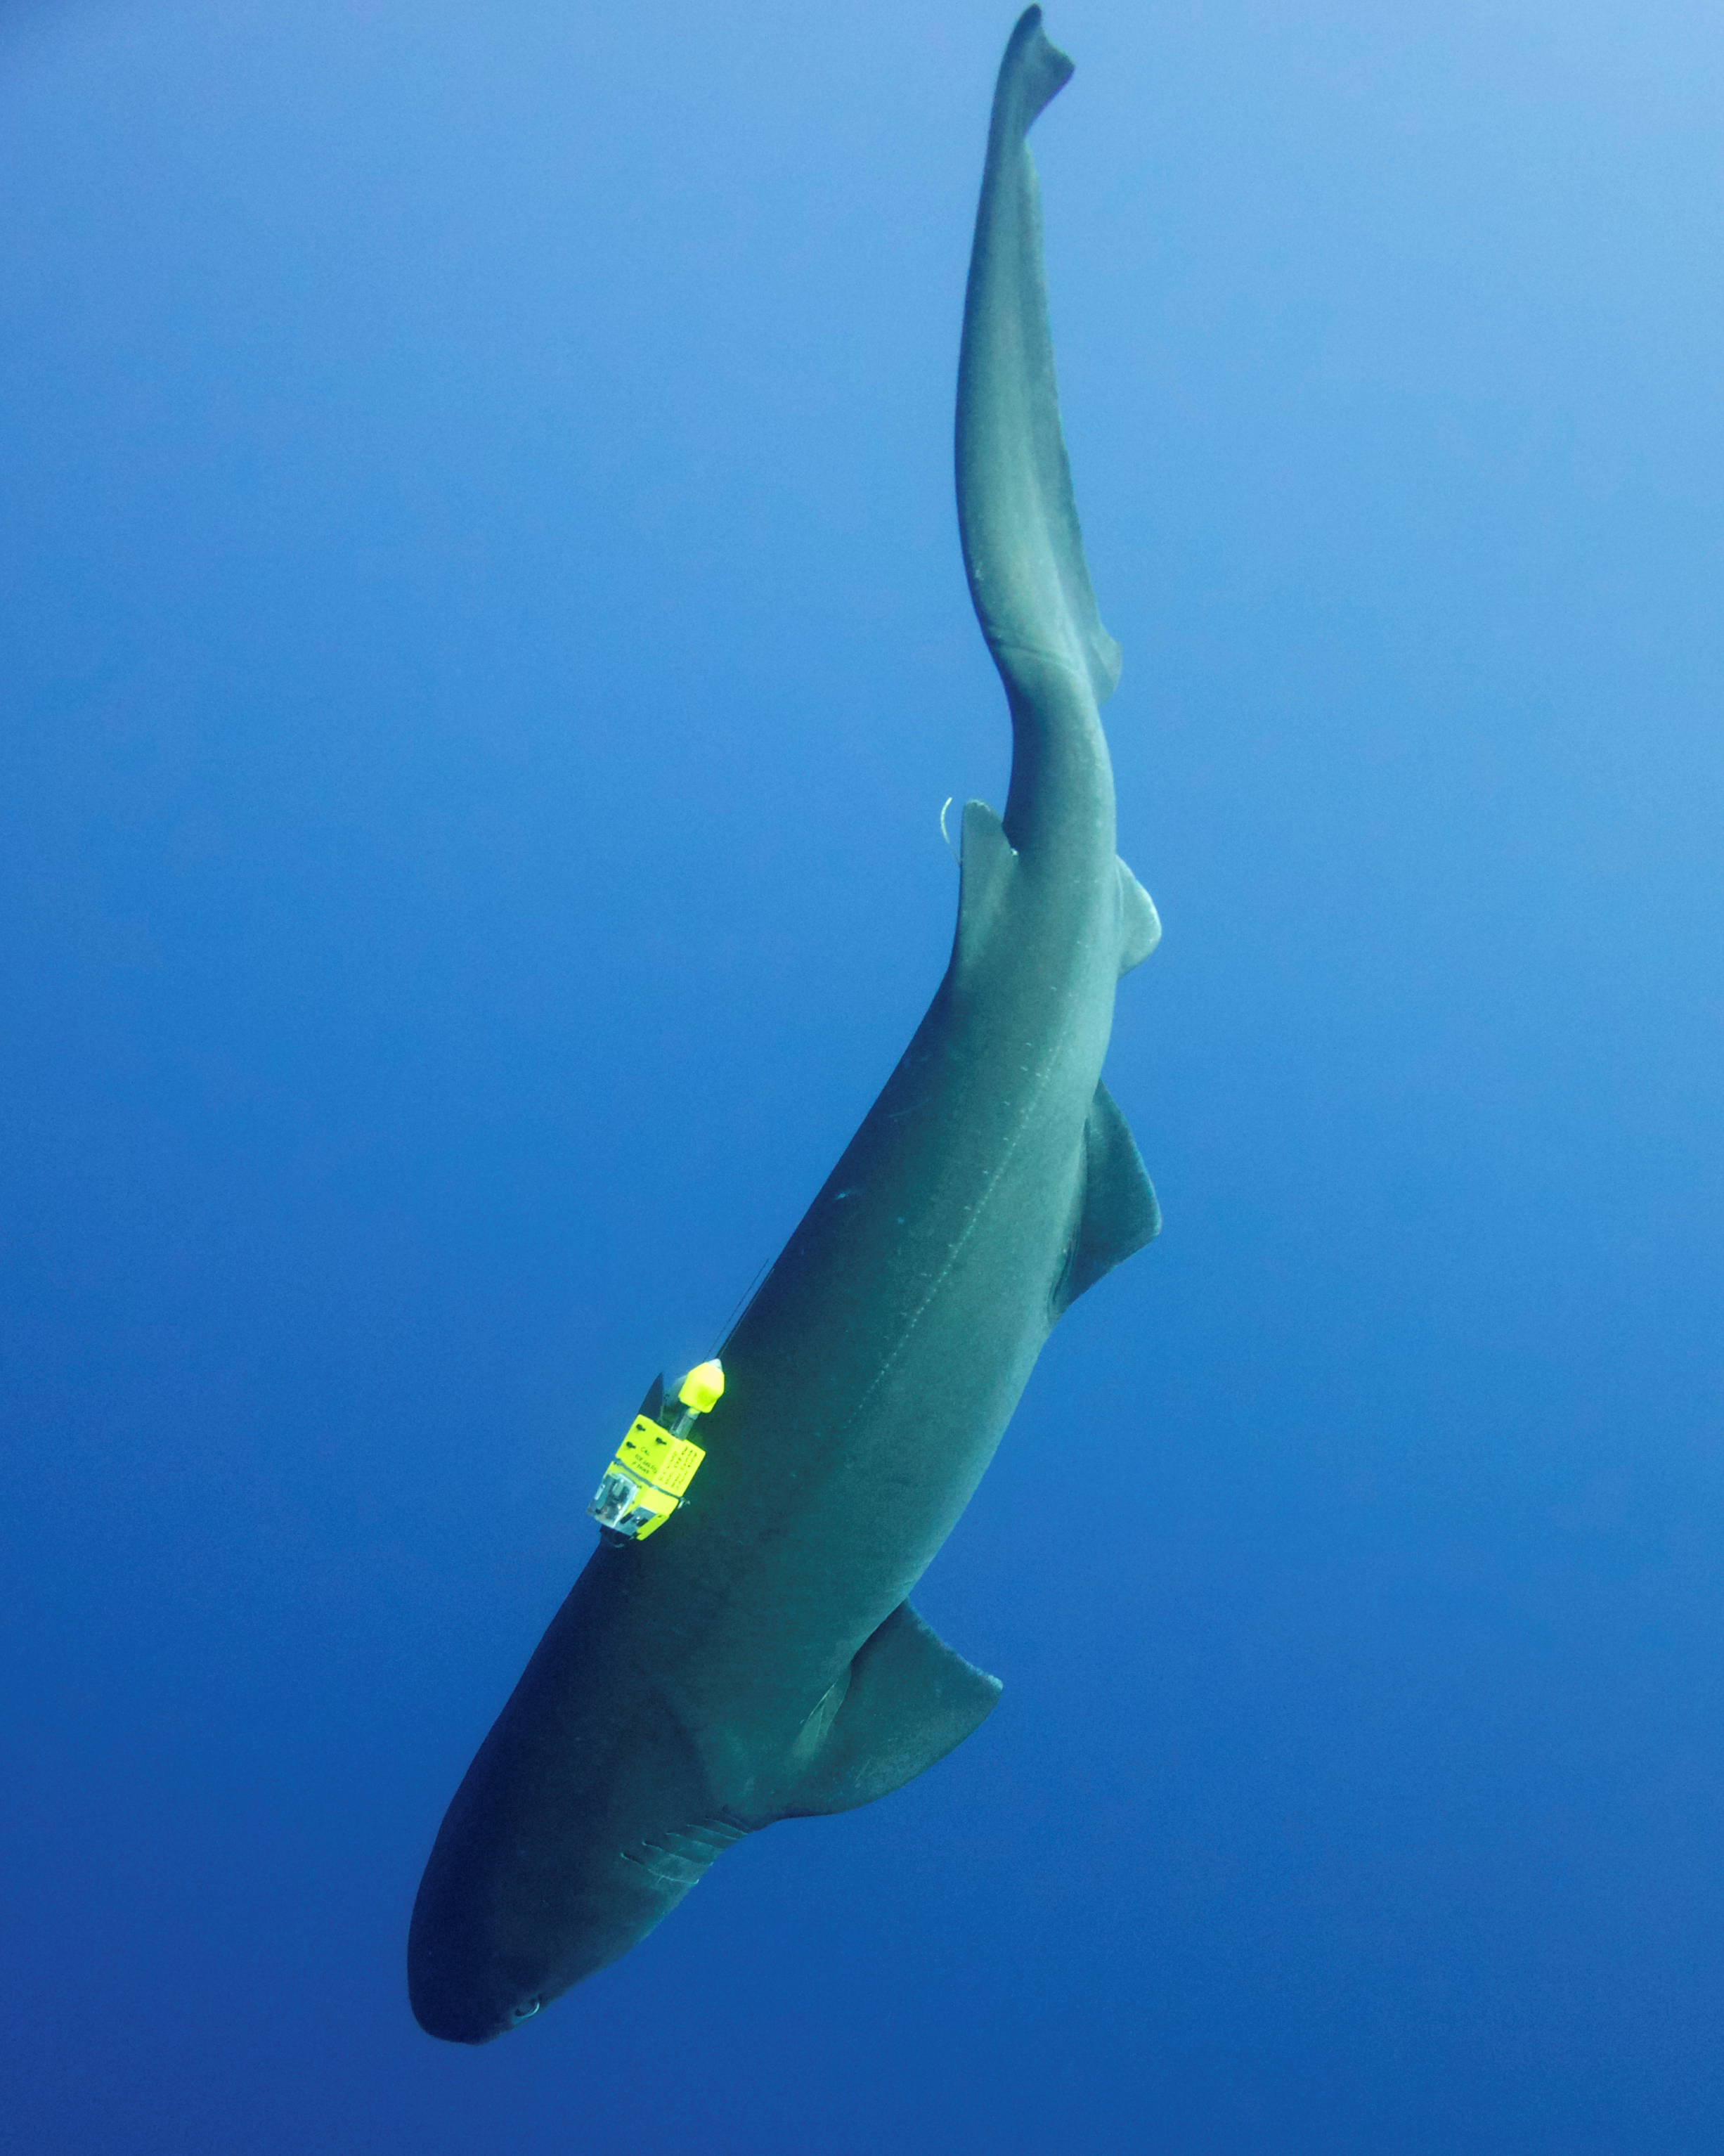 The secret lives of marine top predators: advances in biotelemetry link ecology and physiology to inform management